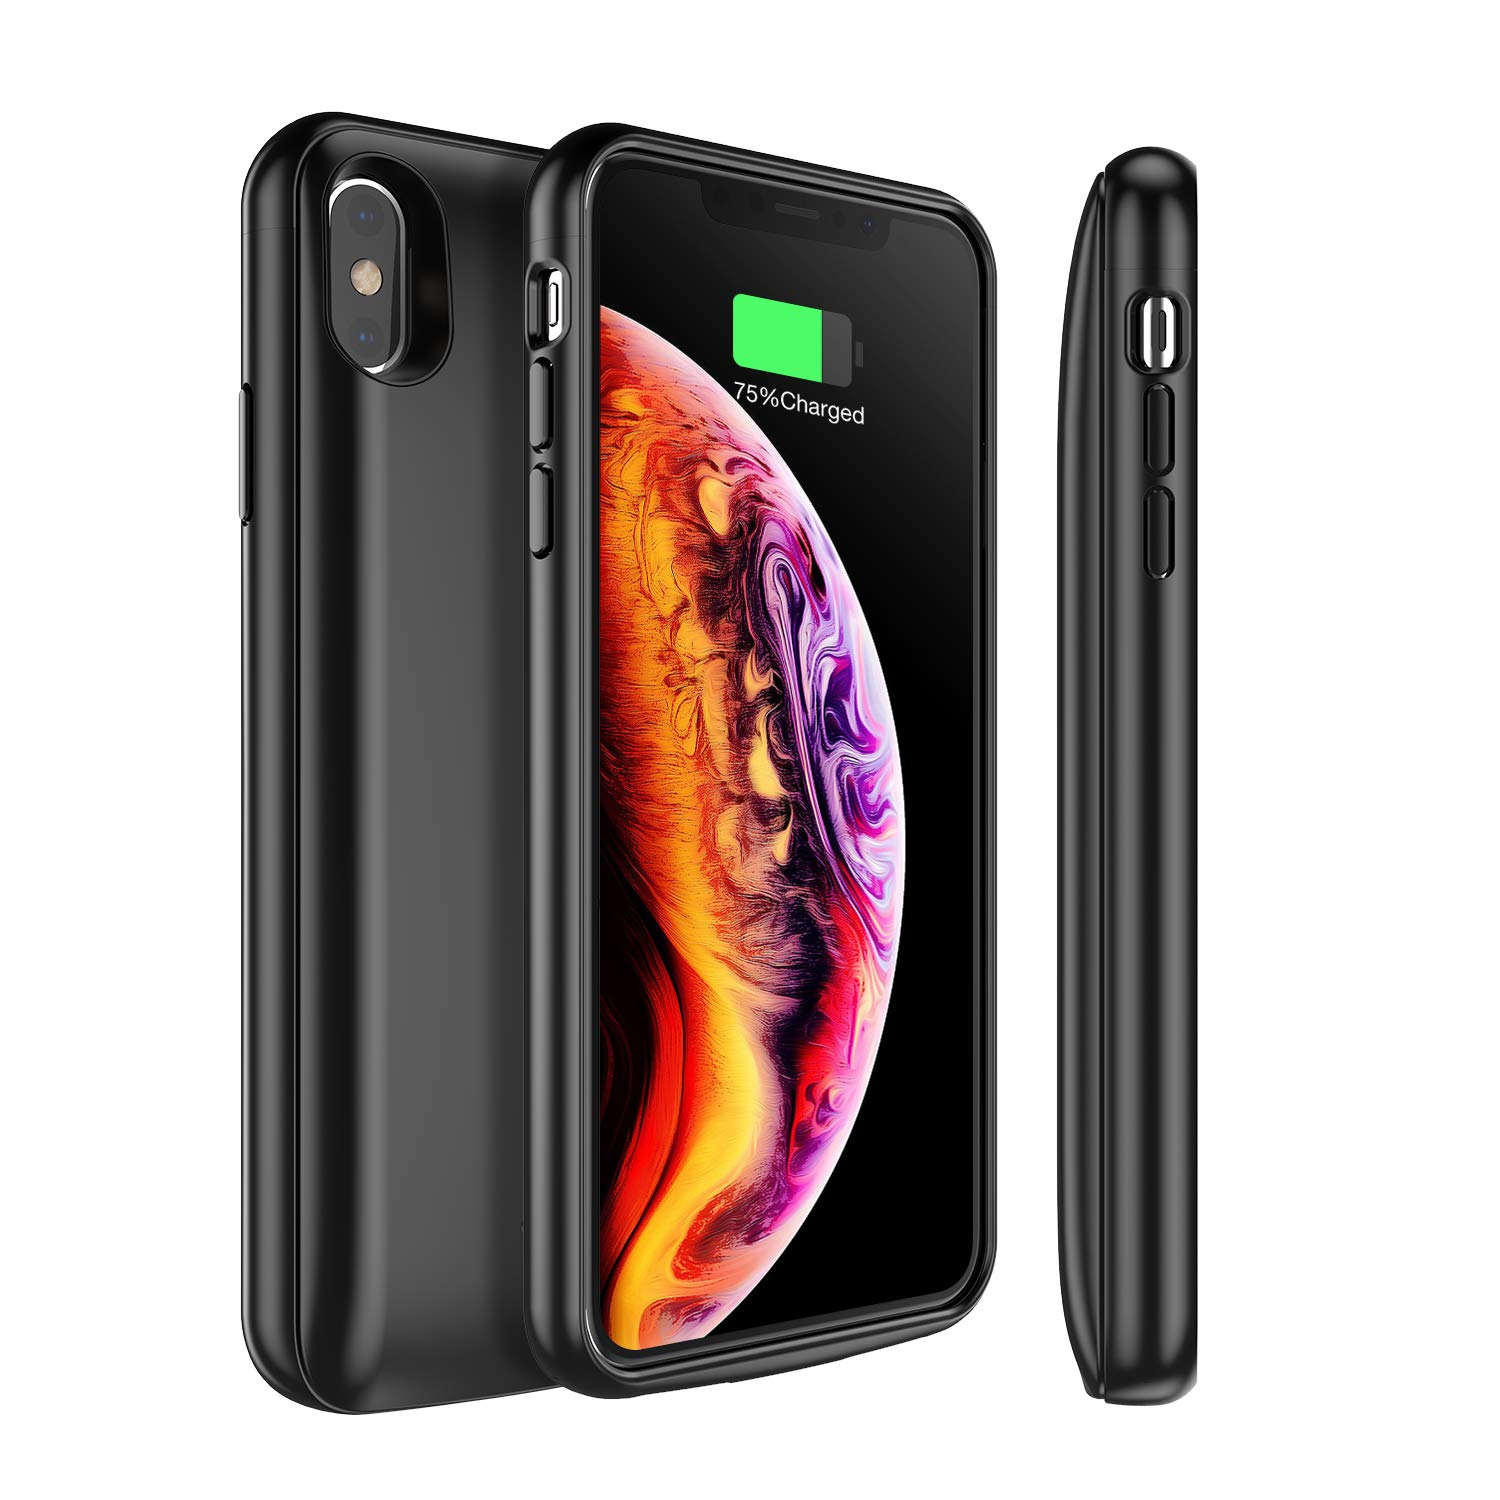 Snowpink iPhone Xs MAX Battery Case Qi Wireless Charging, 5000mAh Slim Portable Charger Case Rechargeable Extended Battery Protective Charging Case Compatible iPhone Xs MAX(6.5 Inch)- Black